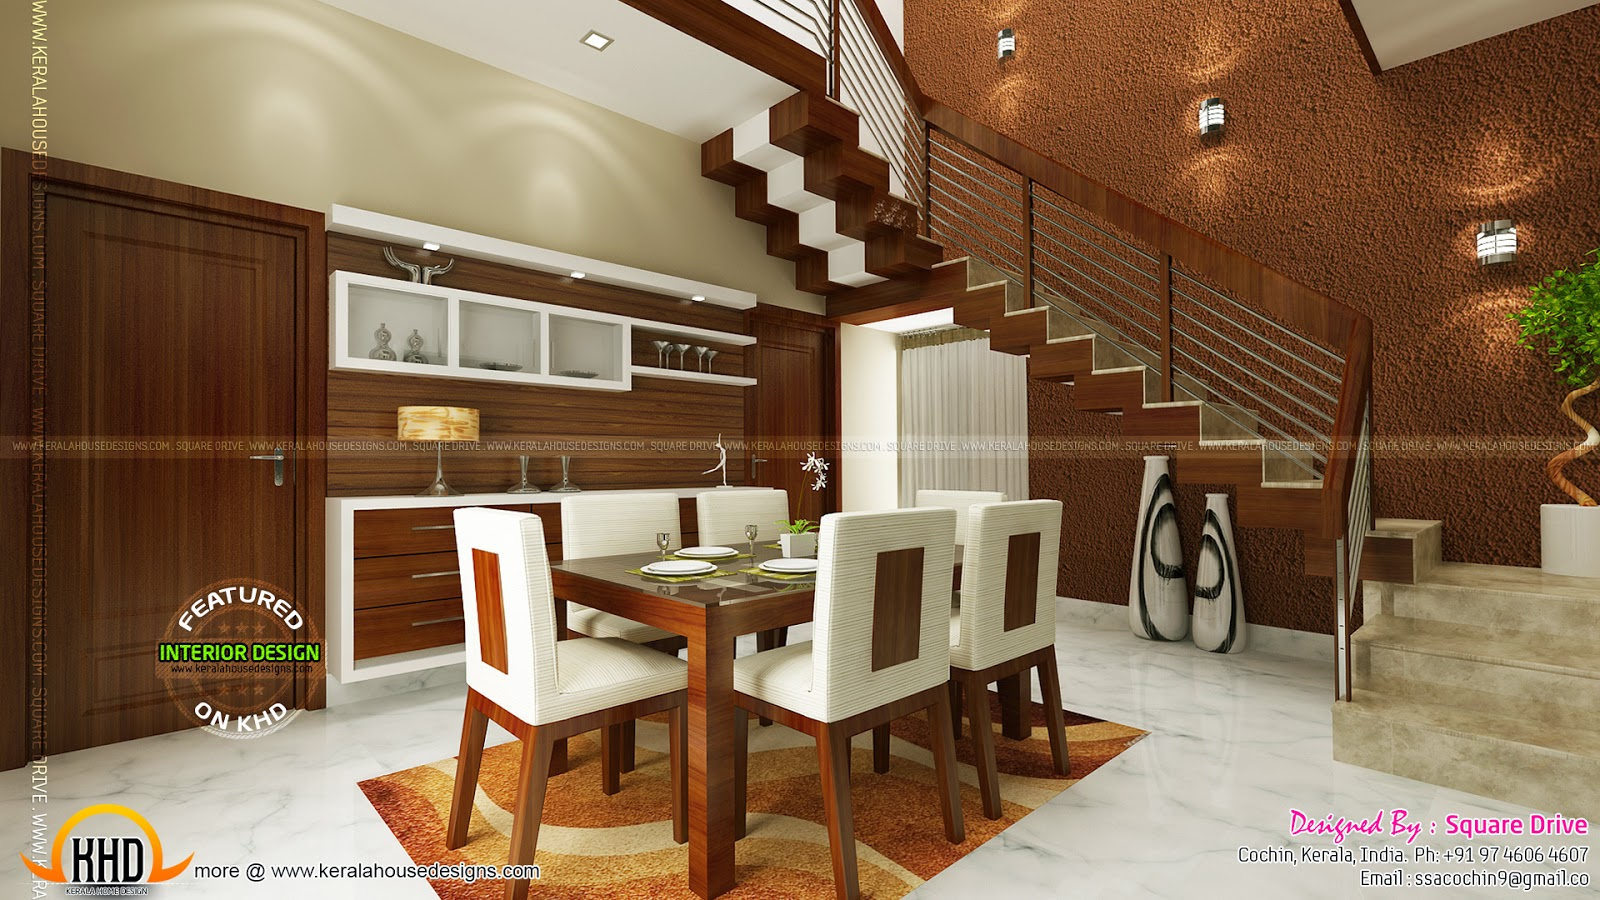 Cochin interior design kerala home design and floor plans for Interior design for kitchen and dining